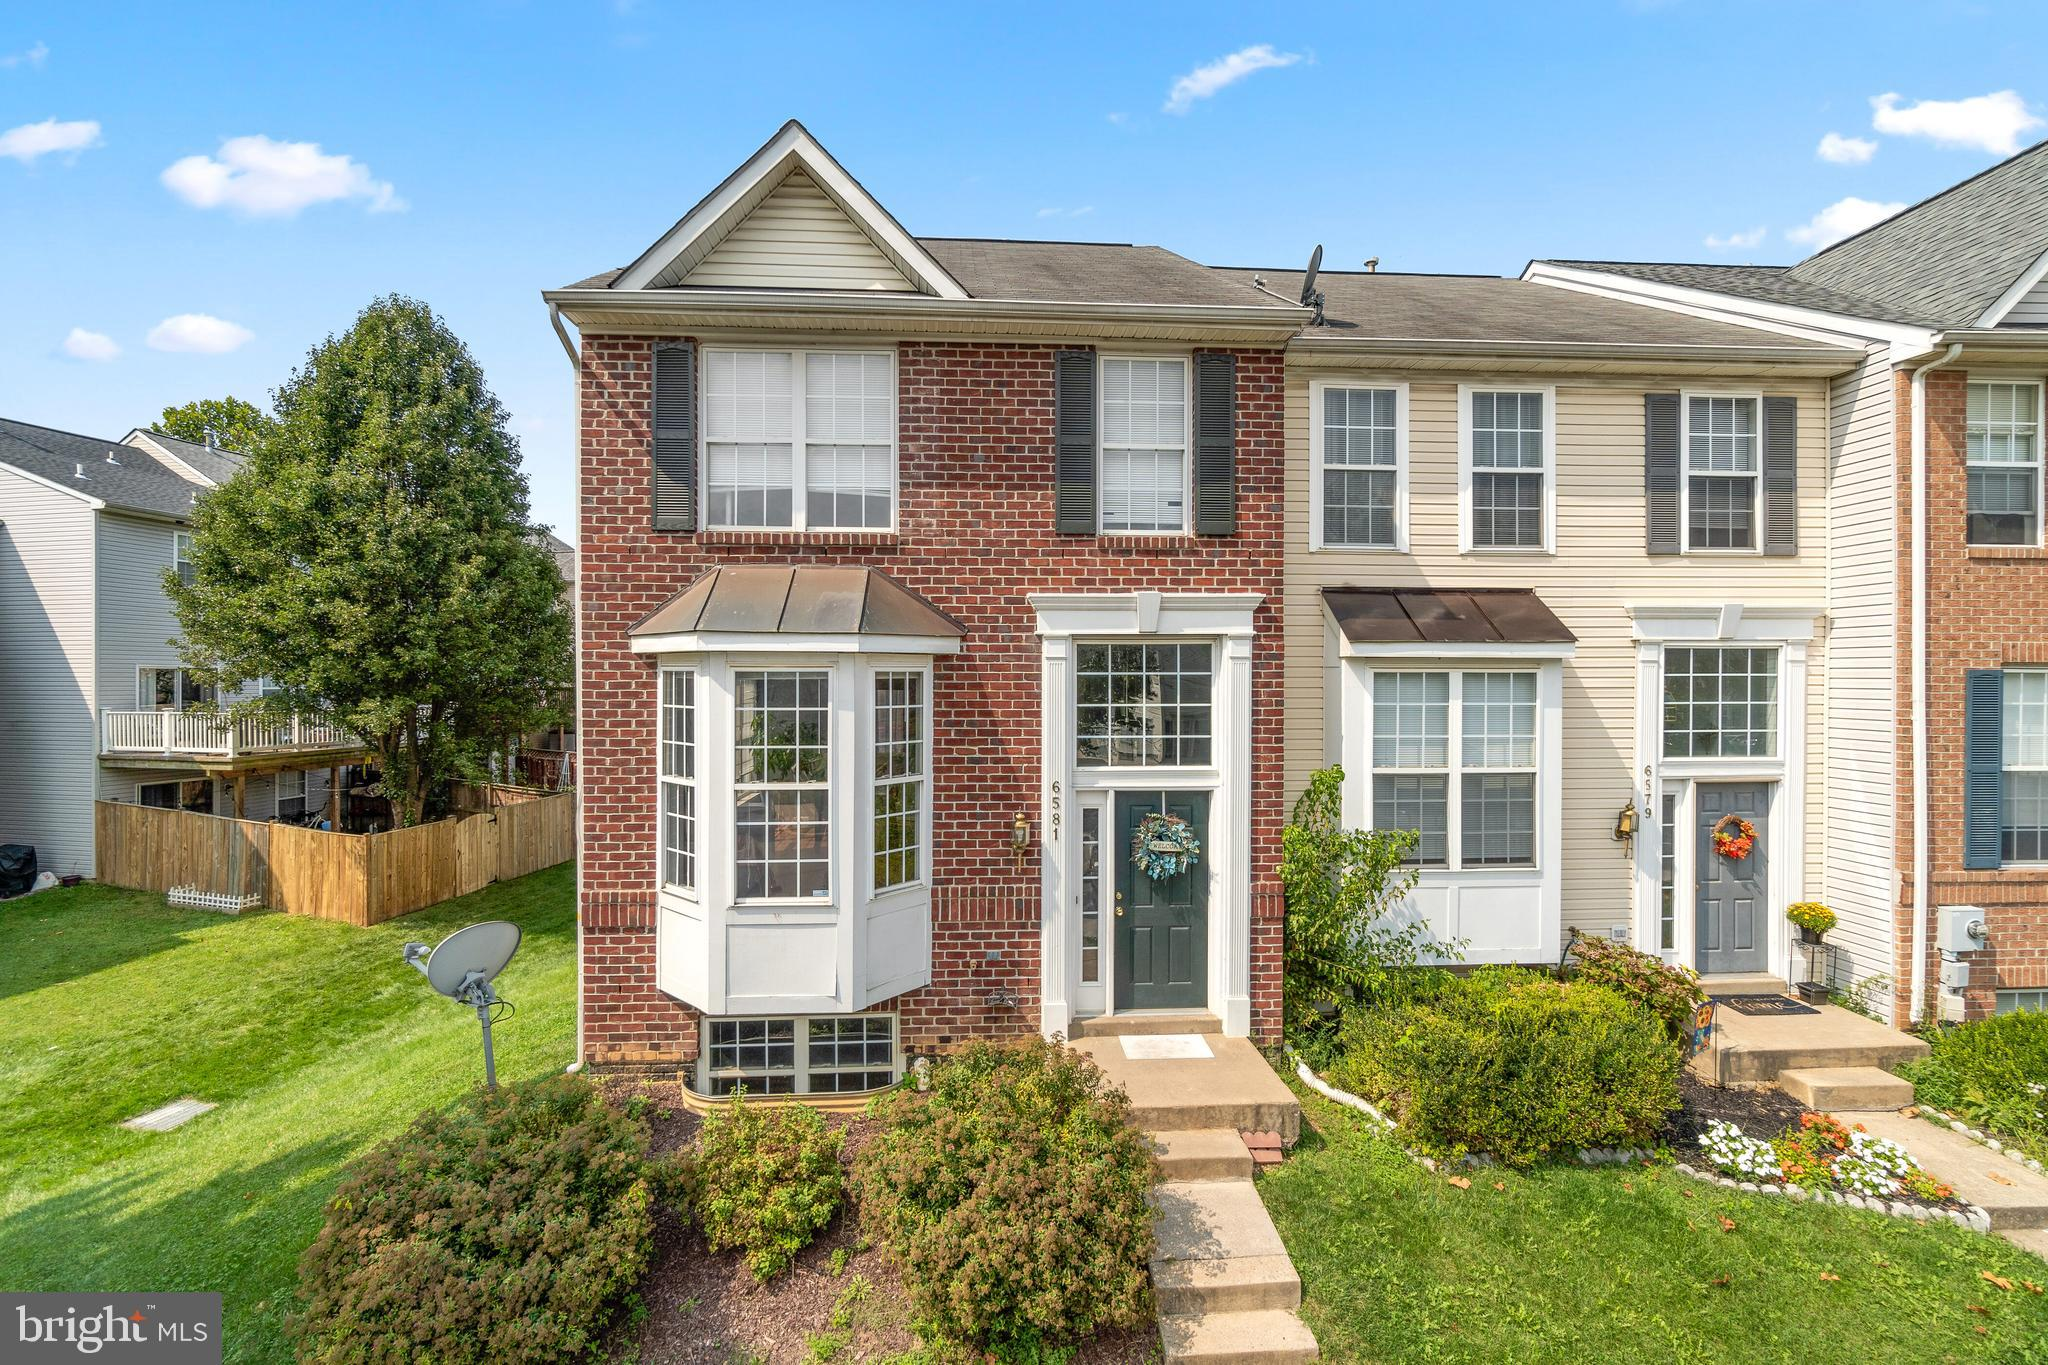 Space is plentiful in this stylish end-of-group townhome designed in an open concept with a 3-level